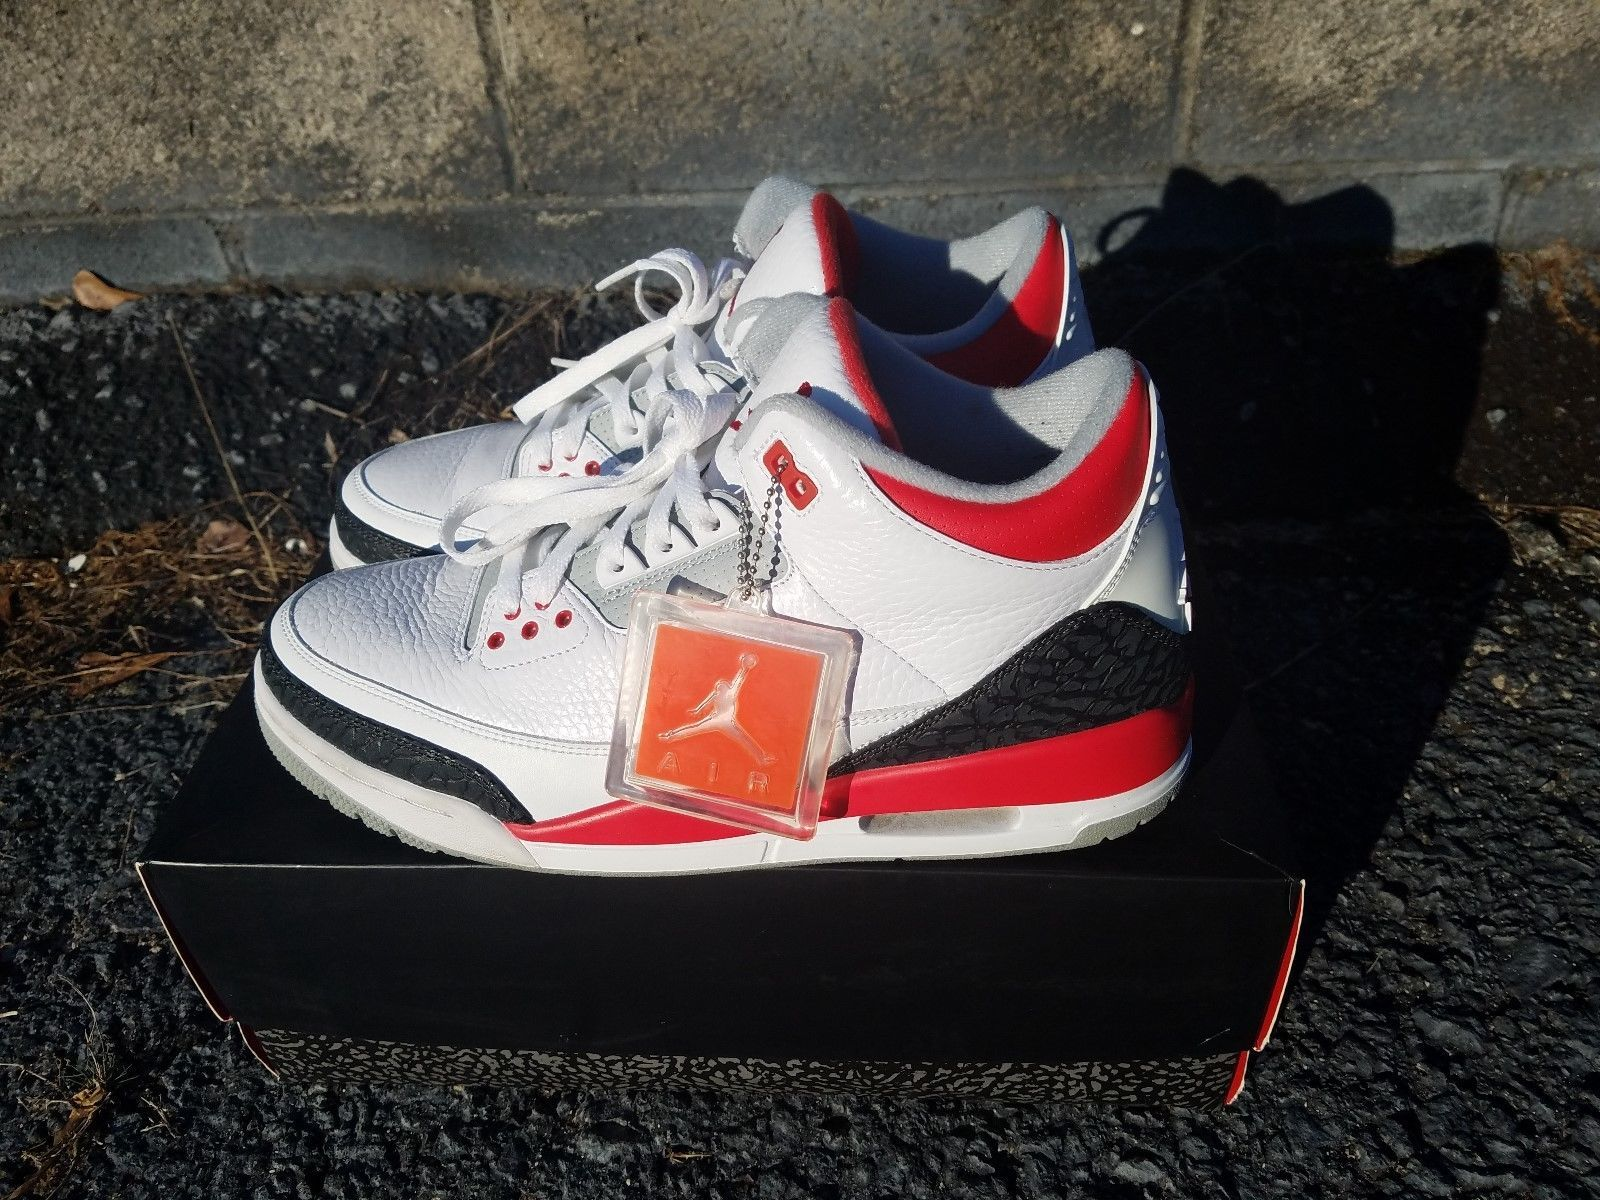 buy popular ee919 a9779 czech air jordan 3 retro white fire red silver black us10.5 9dd17 bb687